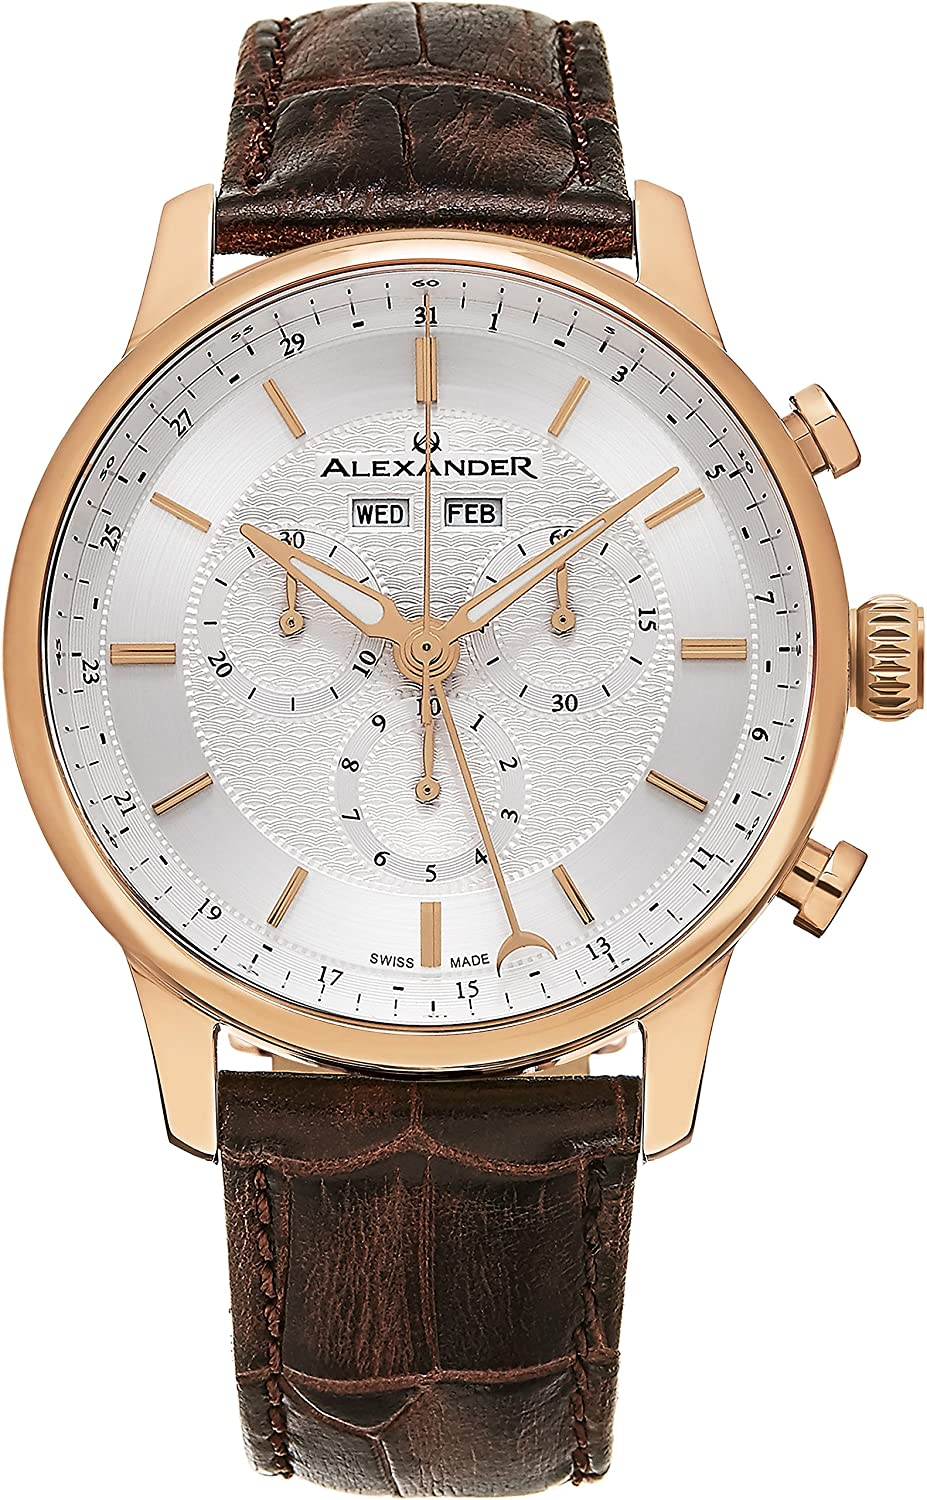 Alexander Statesman Chieftain Wrist Watch for Men – Brown Leather Analog Swiss Watch – Stainless Steel Plated Rose Gold Watch – Silver Dial Day Date Month Mens Chronograph Watch A101-05